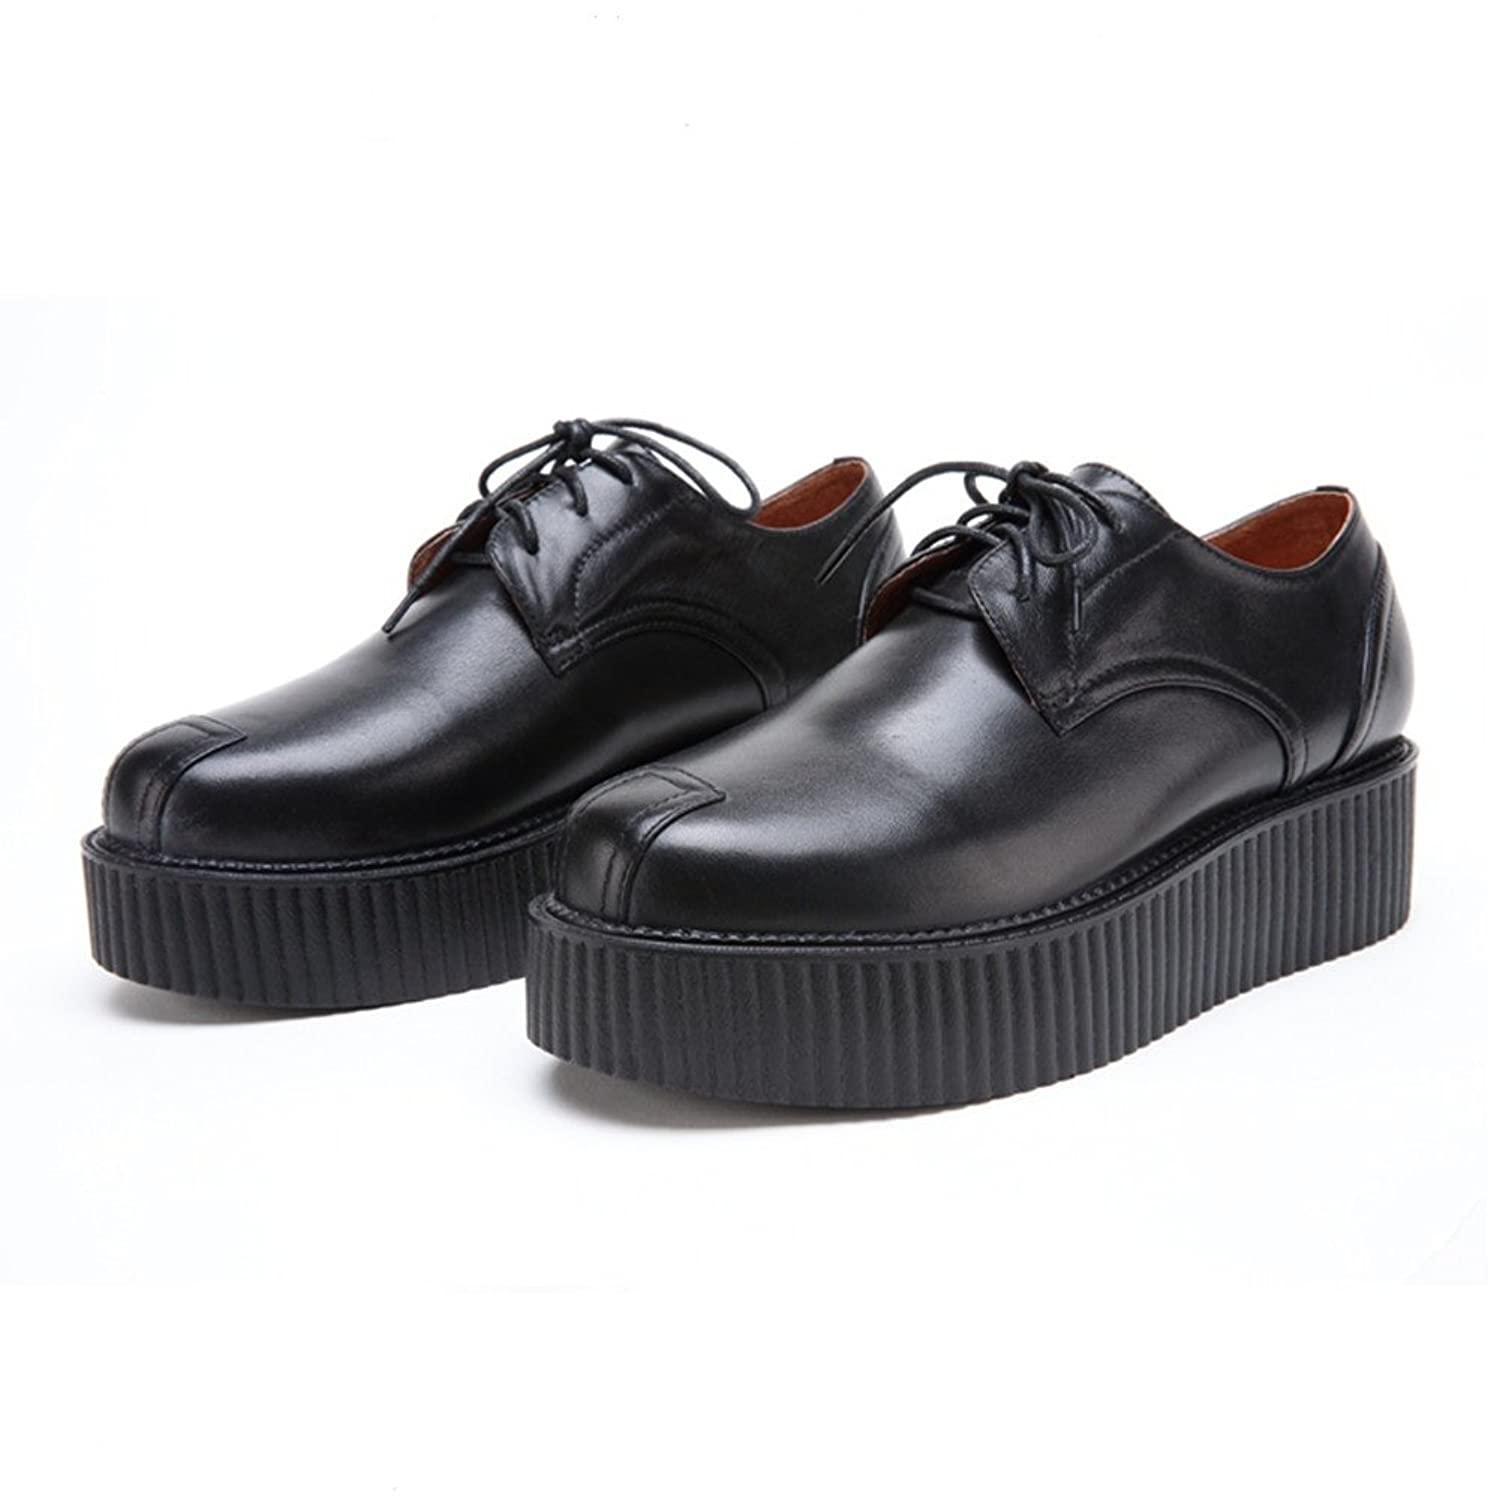 RoseG Men's Full Grain Leather Lace-Up Platform Creepers Classic Oxfords  Shoes: Amazon.ca: Shoes & Handbags